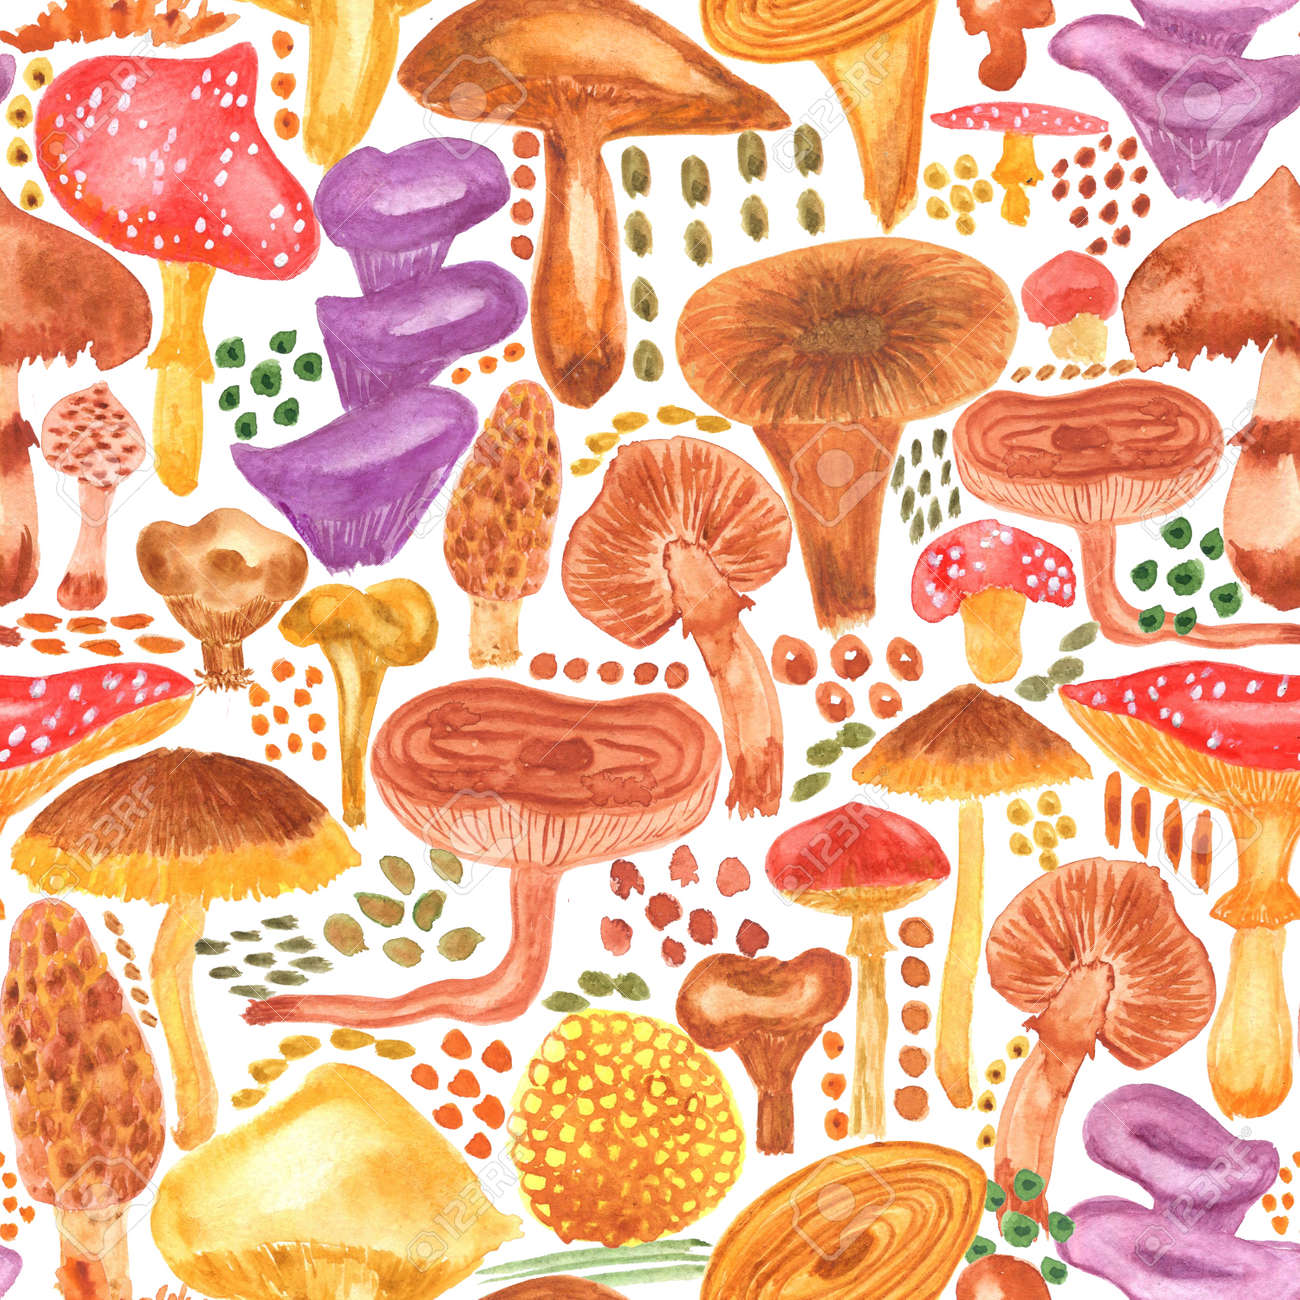 Colorful watercolor mushrooms seamless pattern. Hand Illustration for creating fabrics, wallpapers, gift wrapping paper, invitations, textile, scrapbooking. Isolated on white background. - 166064023